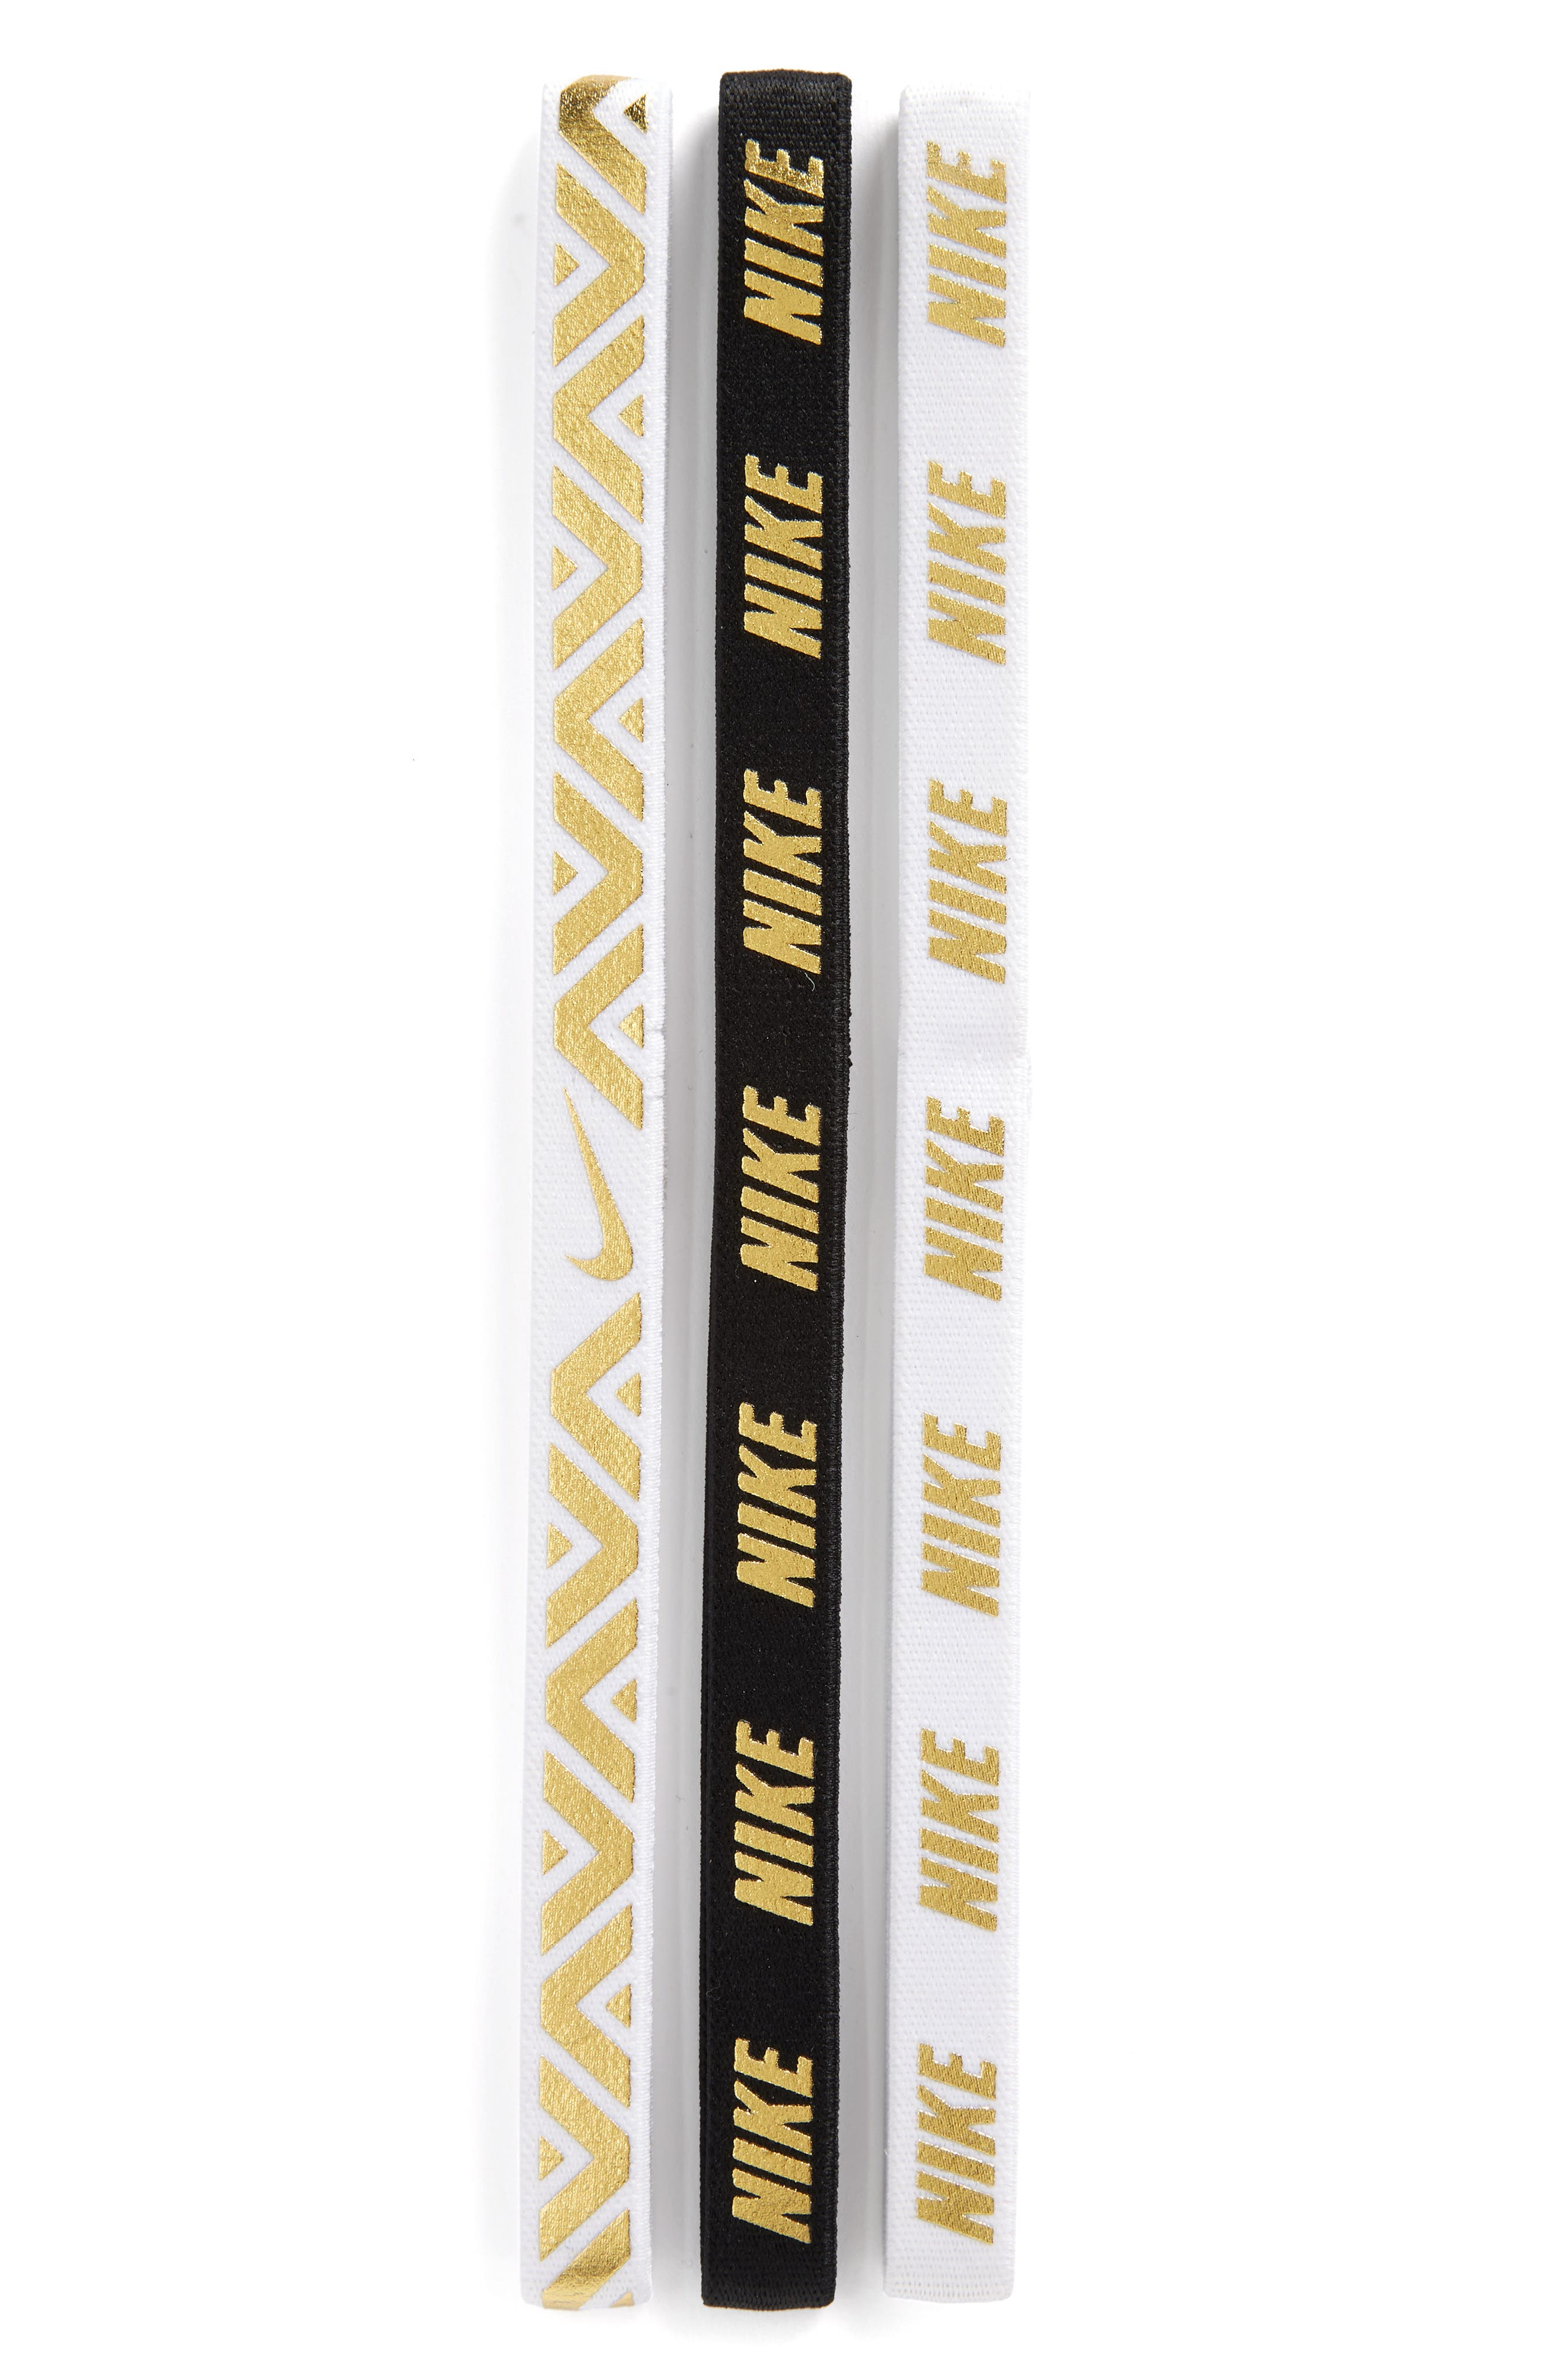 3-Pack Headbands,                         Main,                         color, WHITE/ WHITE/ BLACK